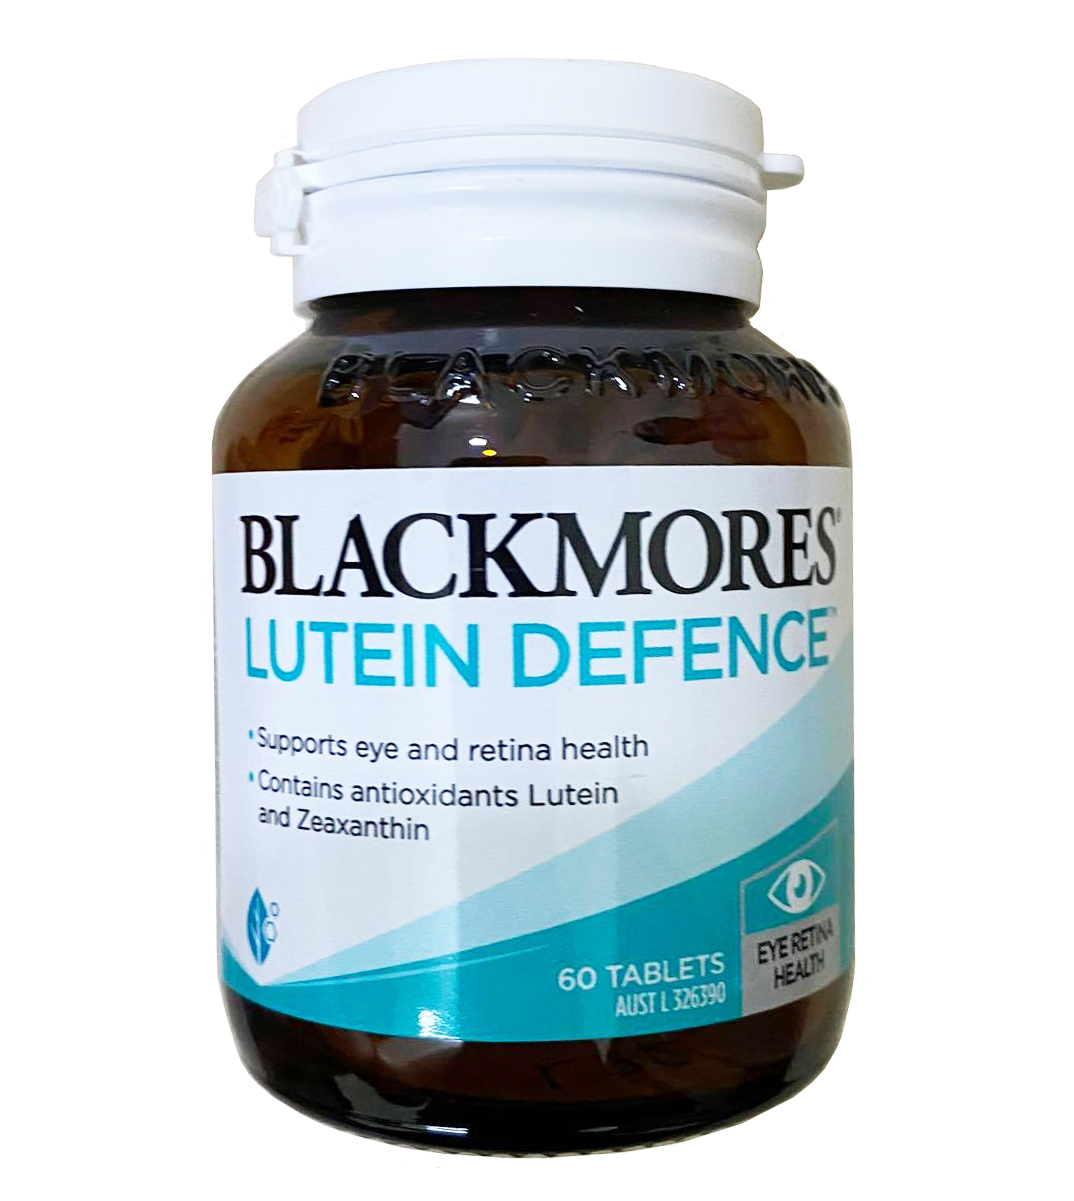 Blackmores Lutein Defence mẫu mới